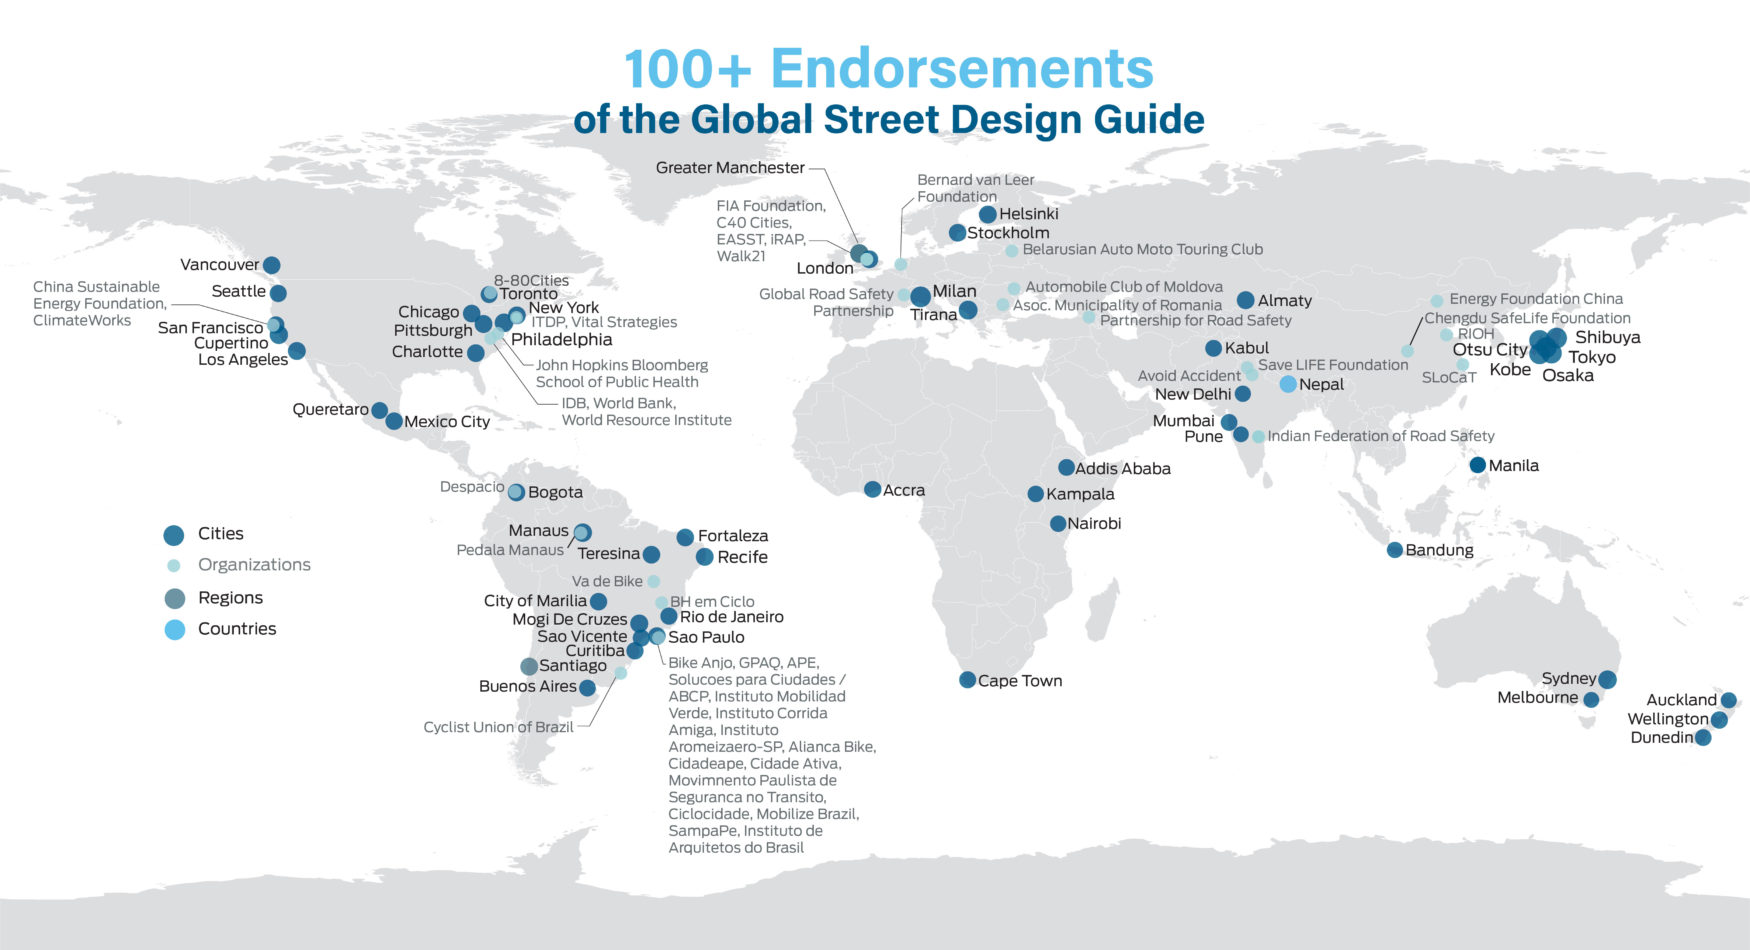 Map of the world highlighting cities, regions, and countries that have endorsed the Global Streets Design Guide